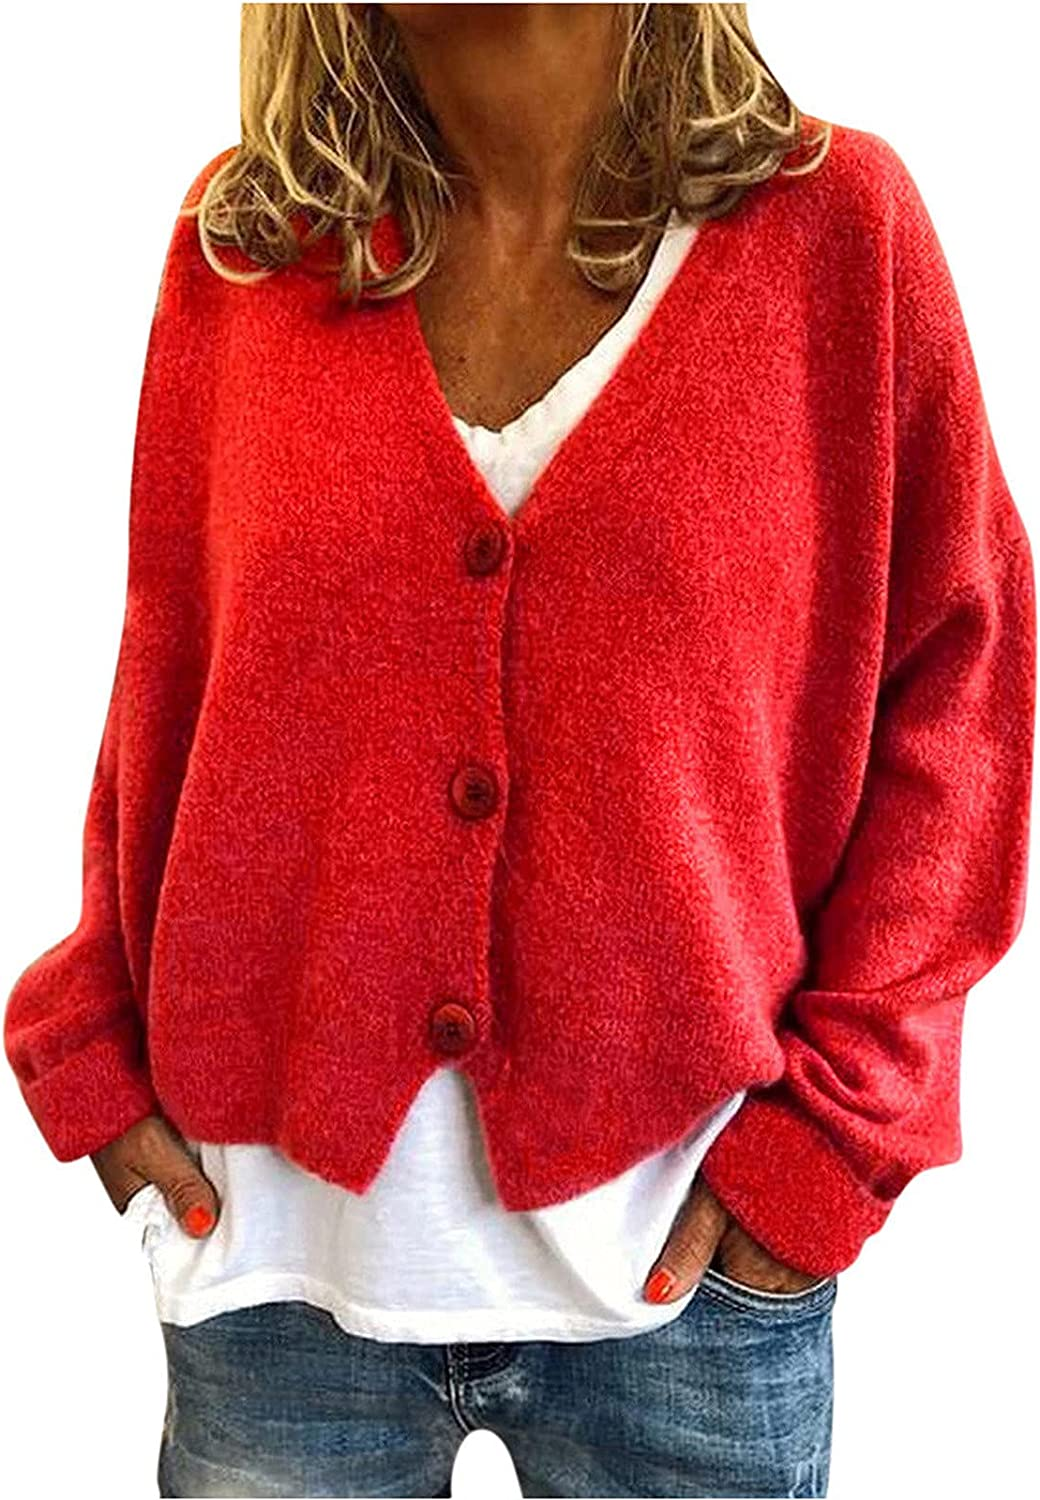 Fashion Cardigan for Womens Sweater Coat Long Sleeve Solid Color Button Autumn Fleece Casual Jacket Blouse Tops